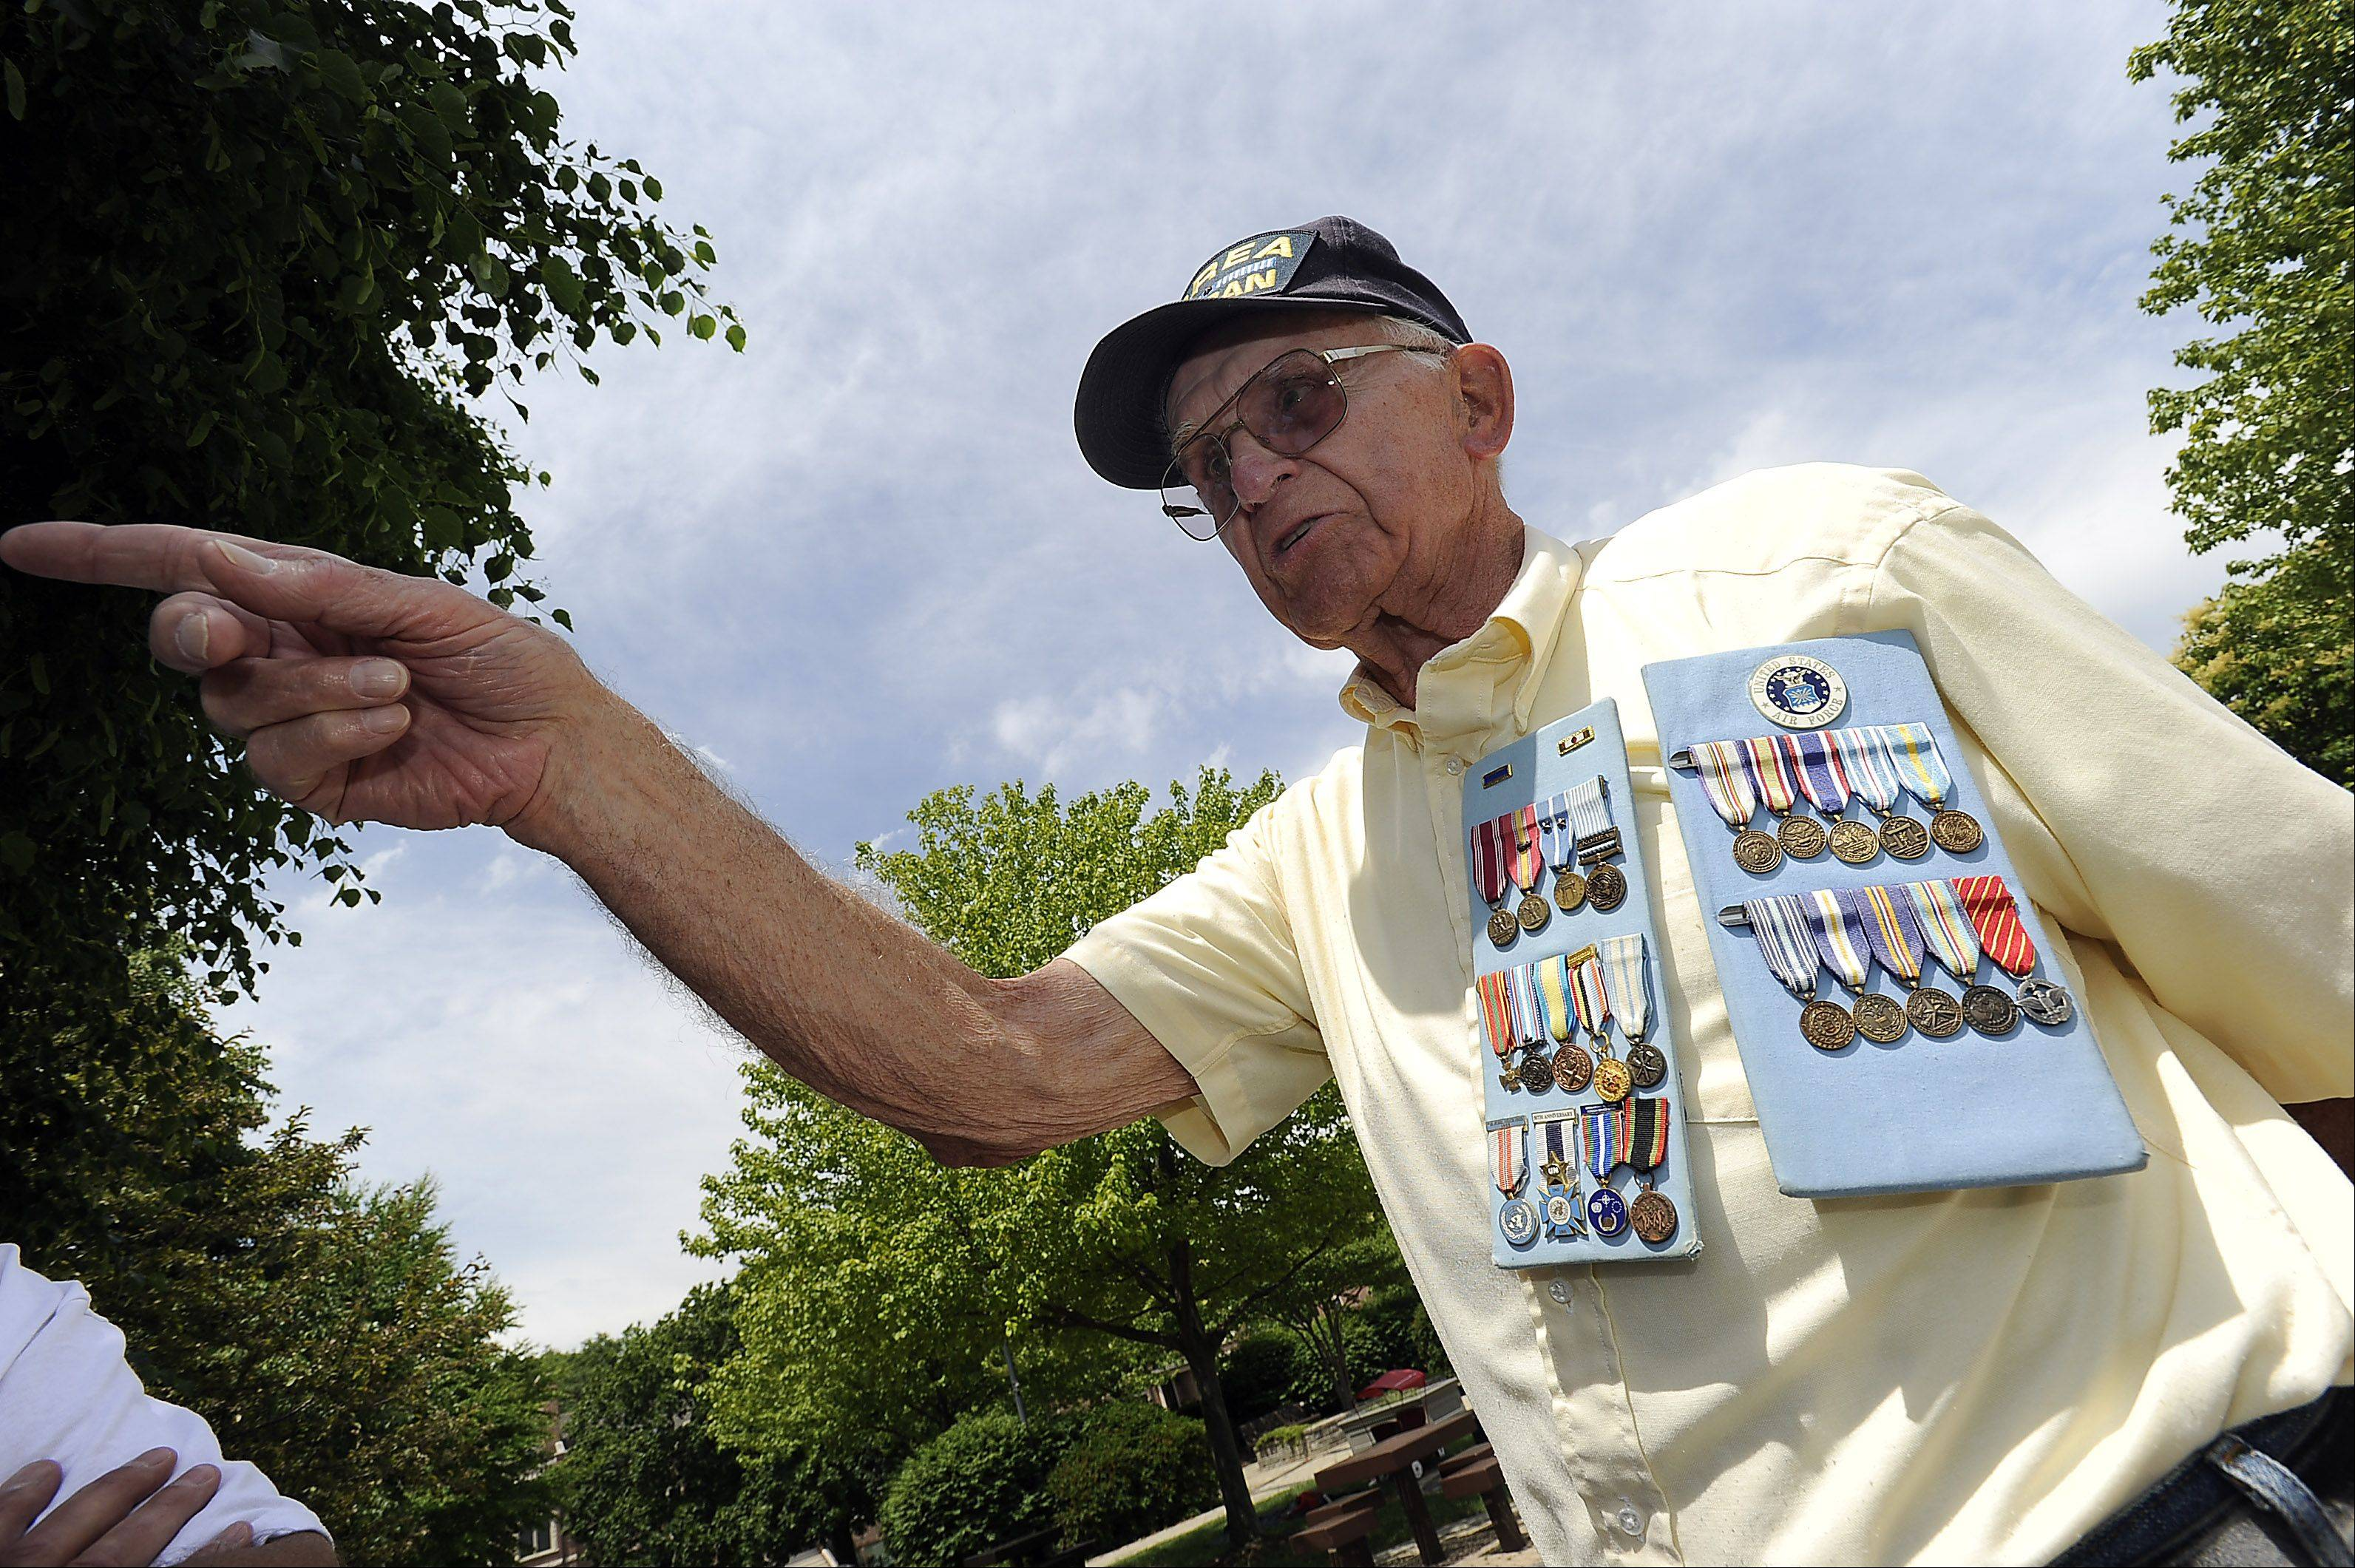 Korean War veteran Jere Crise of Palatine shows off his medals during Palatine's American Legion Post 690 ceremony held on Memorial Day in Towne Square on Monday.